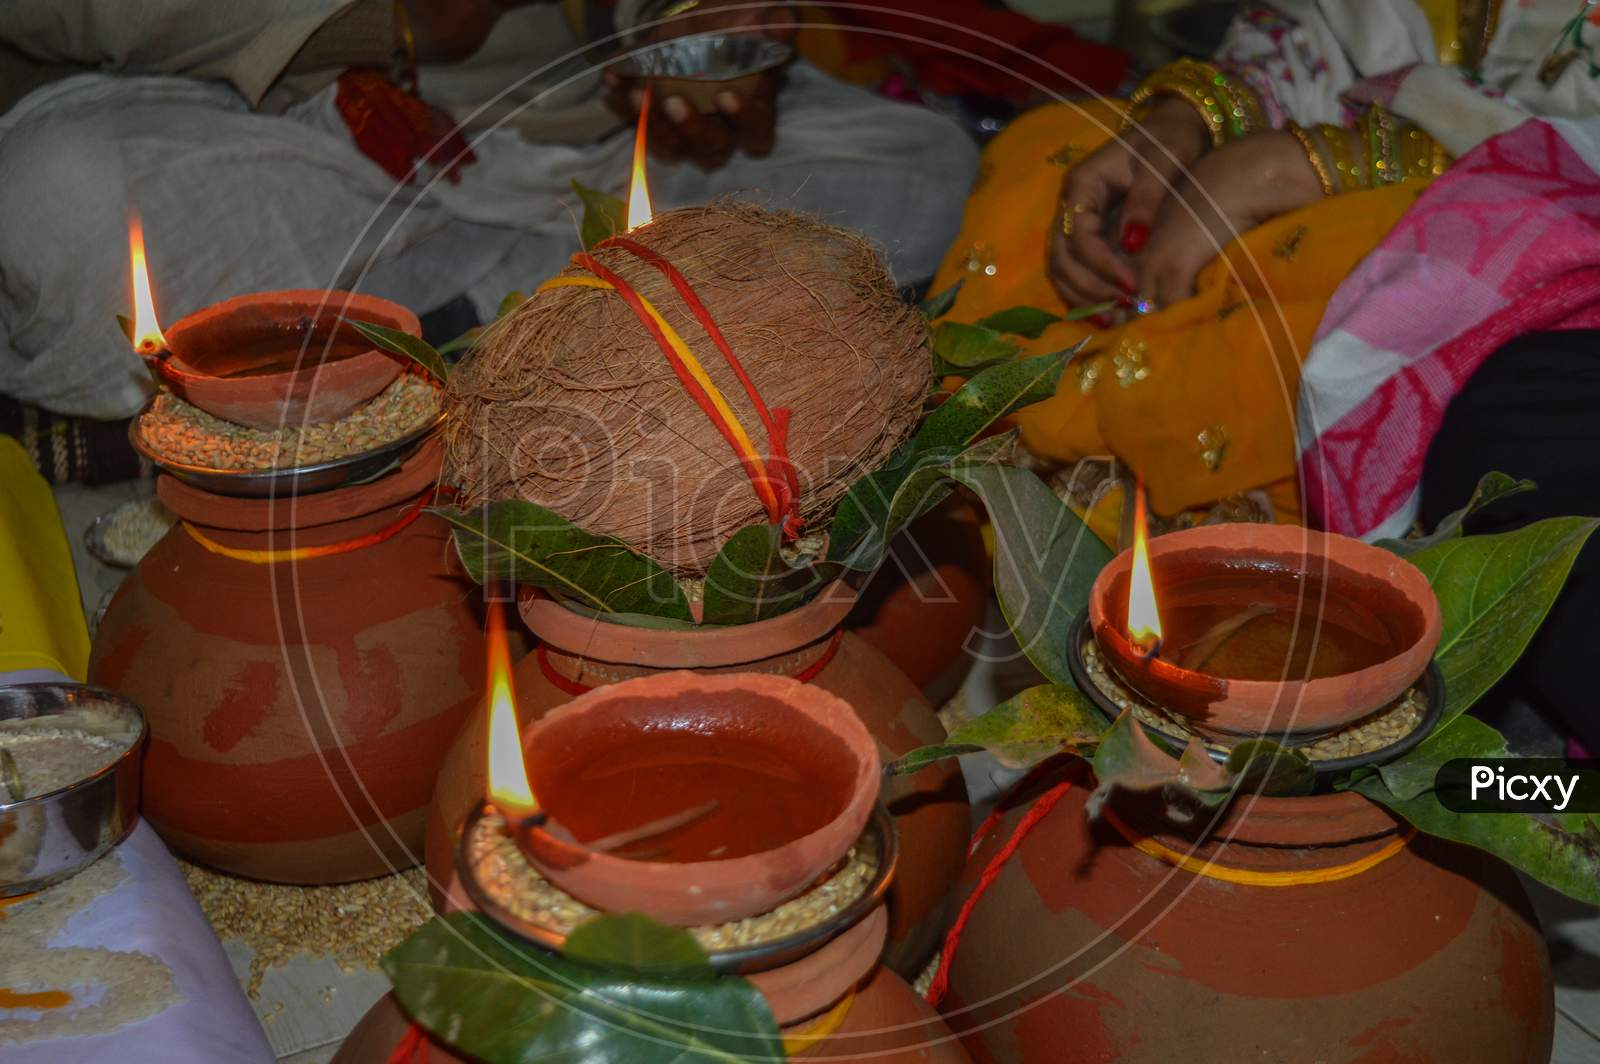 Clay Pot With Coconut, Mango Tree Leaf, Oil, Rice, Wheat Lit Up For Worship Of Indian God.